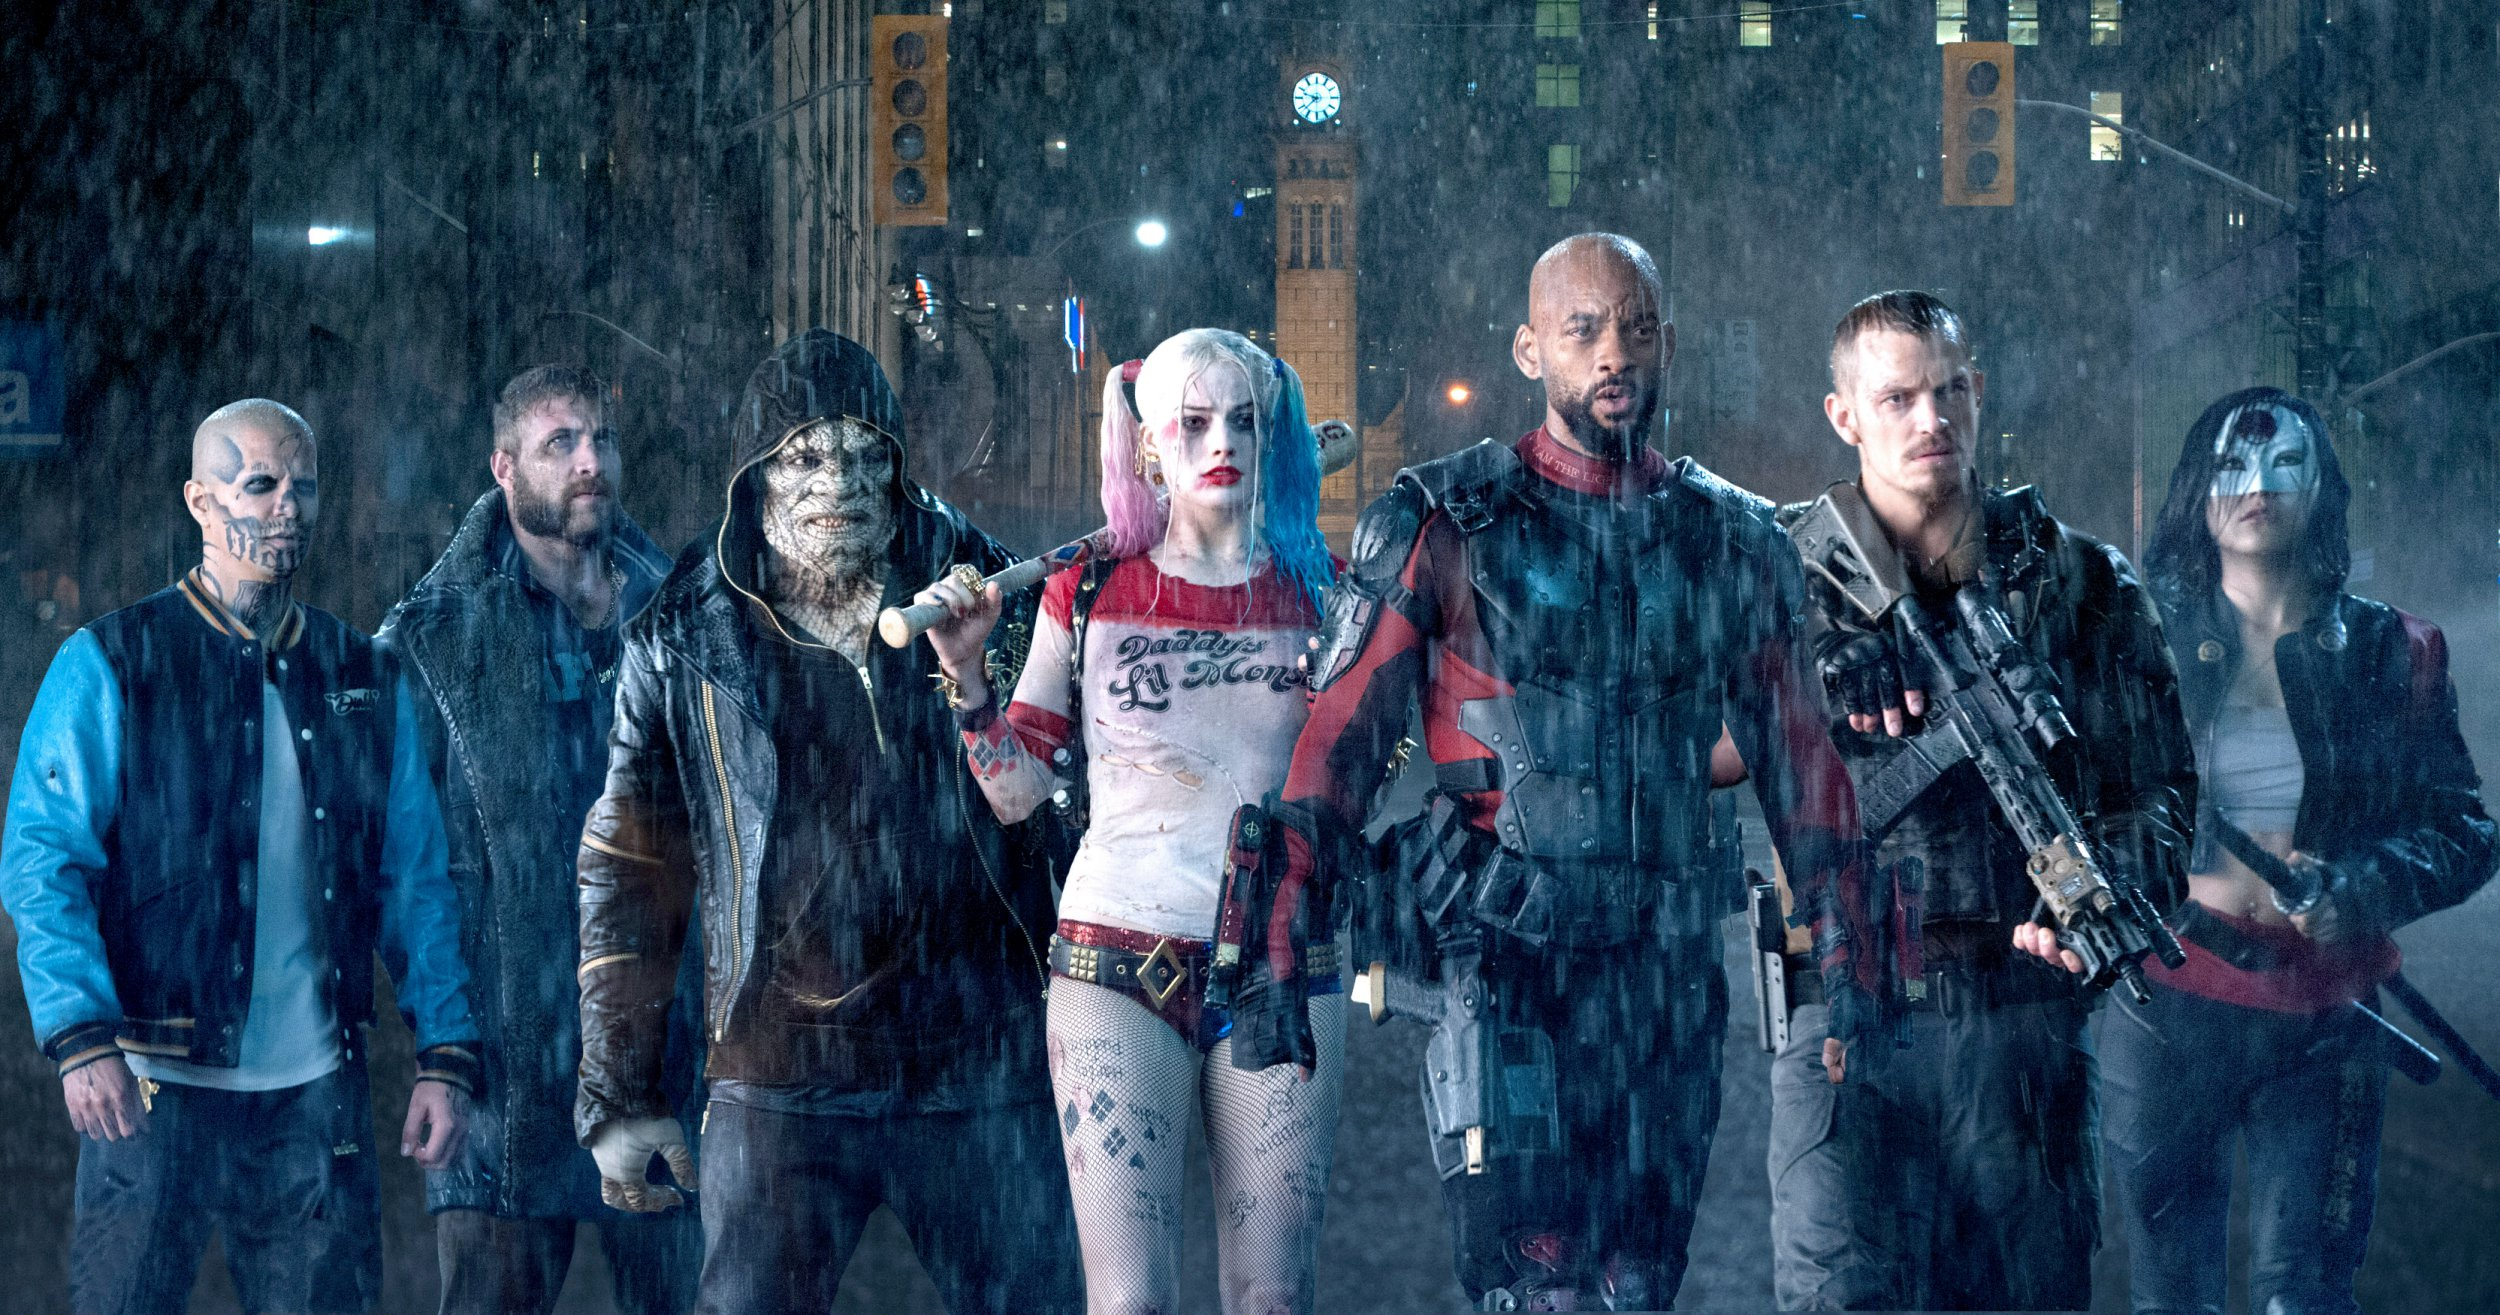 James Gunn's new Suicide Squad movie will be a 'total reboot' not a sequel